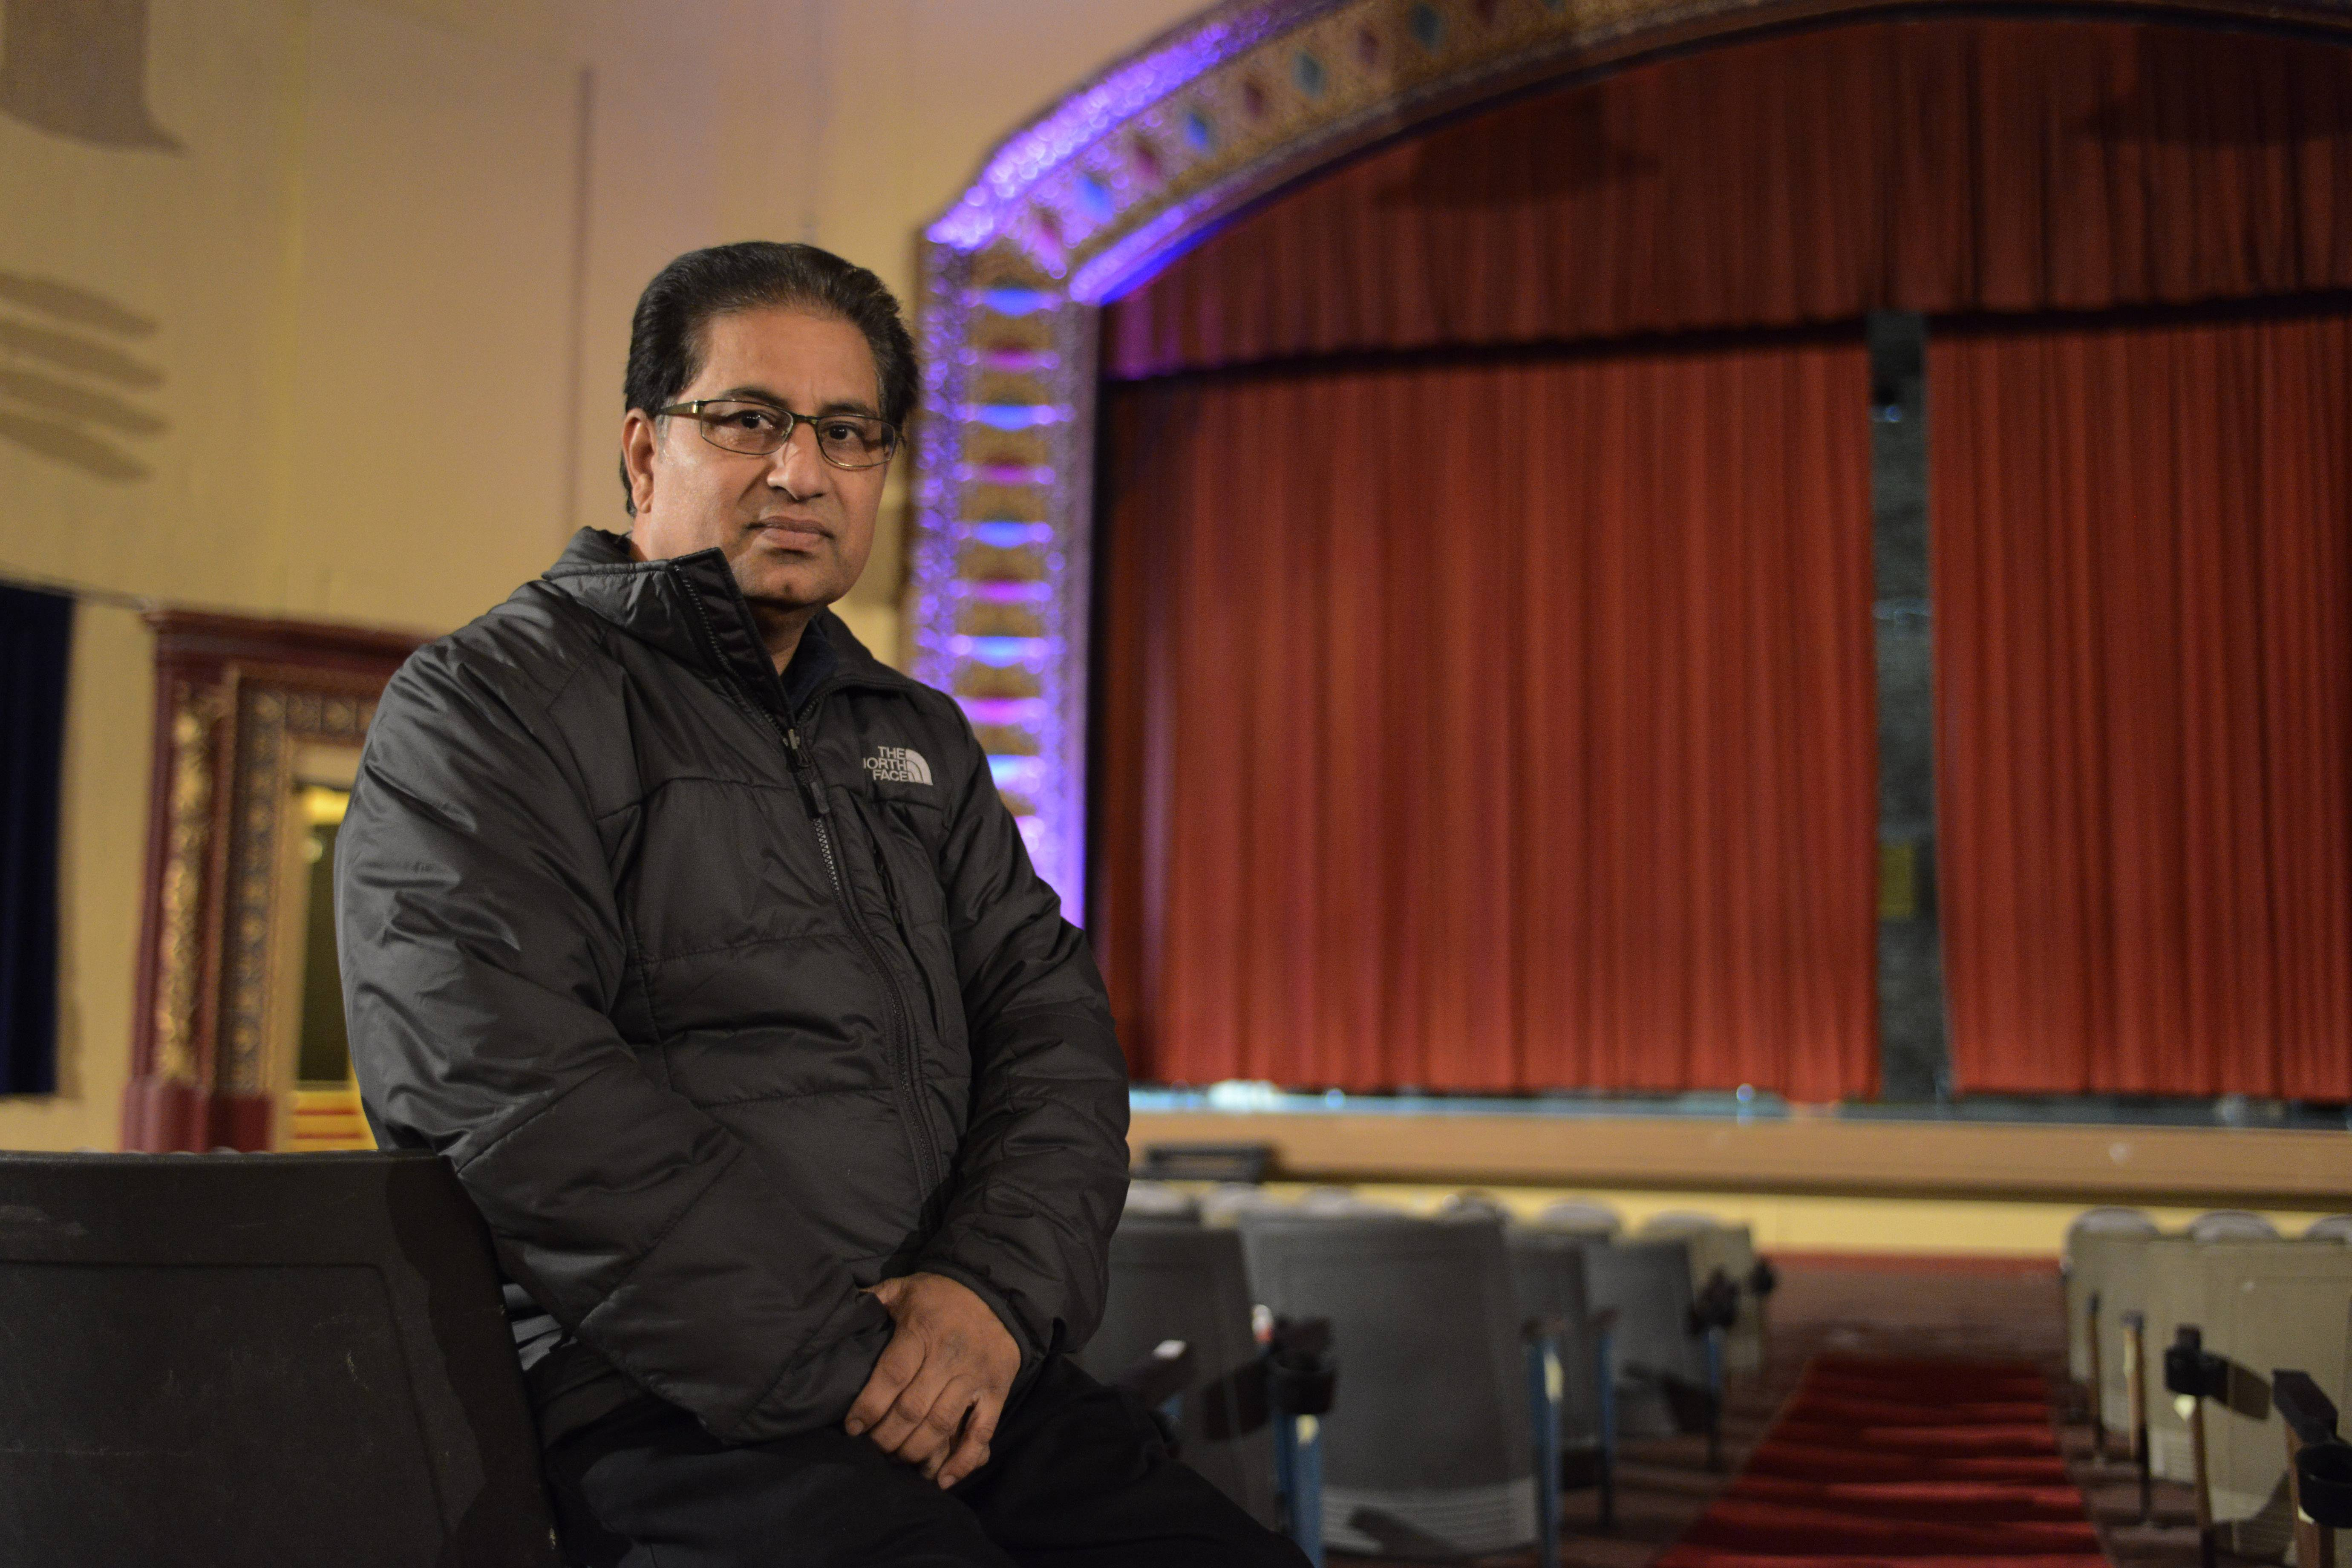 Des Plaines Theatre owner Dhitu Bhagwakar says he's willing to entertain a variety of options regarding the future of the theater, including working with someone who could operate the venue.